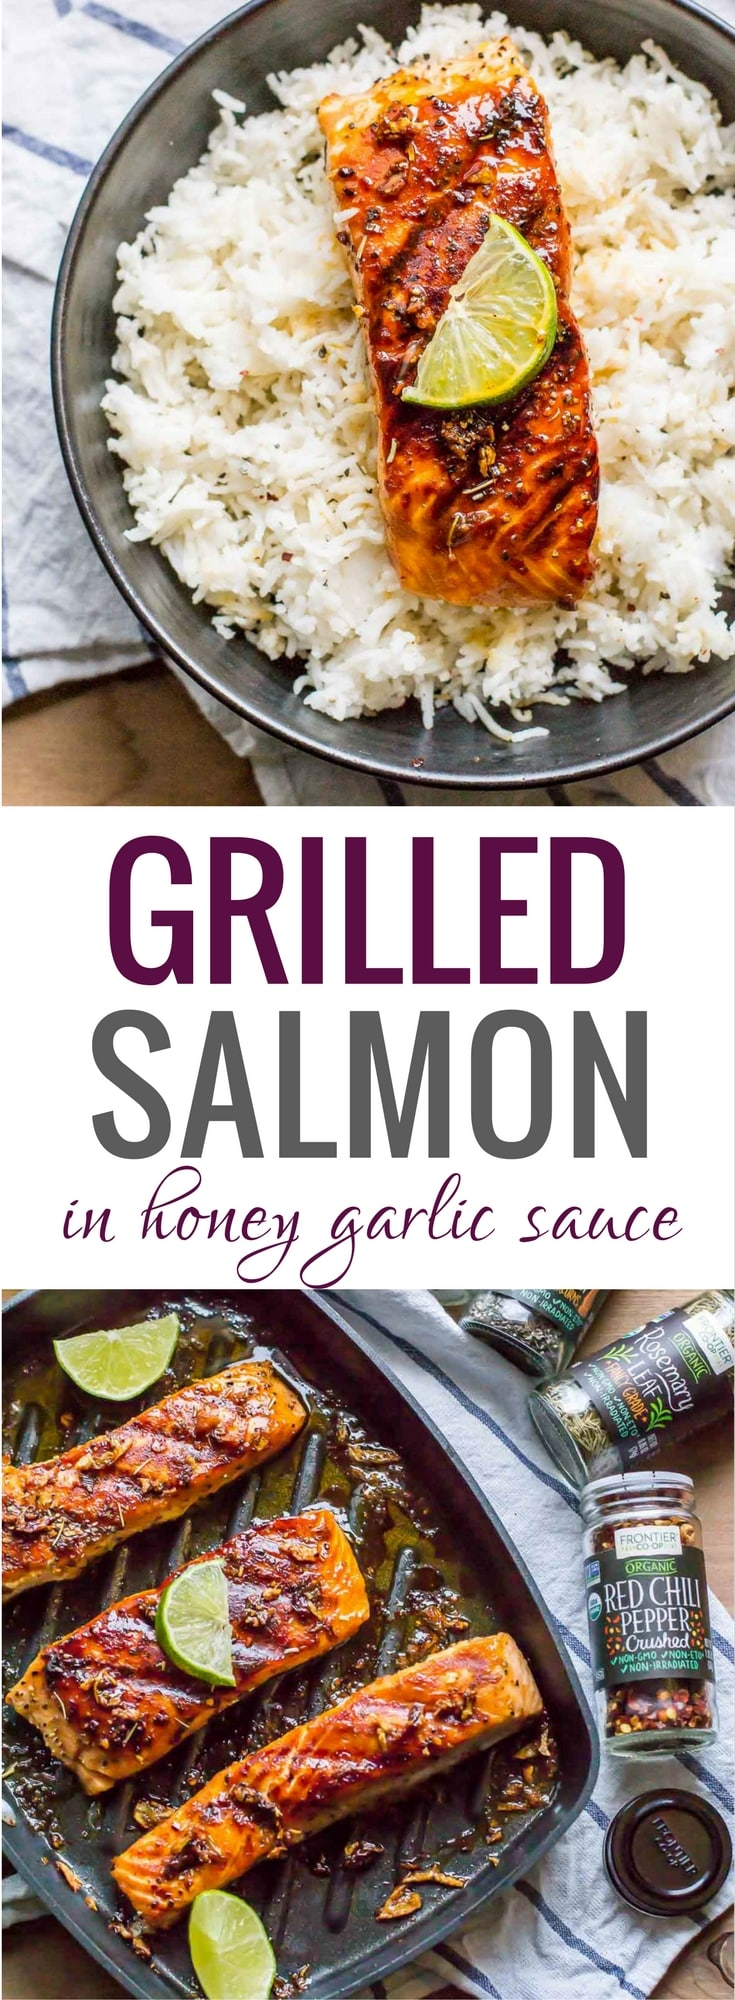 This easy 15-minute grilled honey garlic salmon is perfect for days when you crave a fancy meal but don't want to pay for it or spend hours making it. It is so finger-licking good that you'll imagine you are in an upscale restaurant enjoying a gourmet meal. #grilled #salmon #cookwithpurpose #sponsored